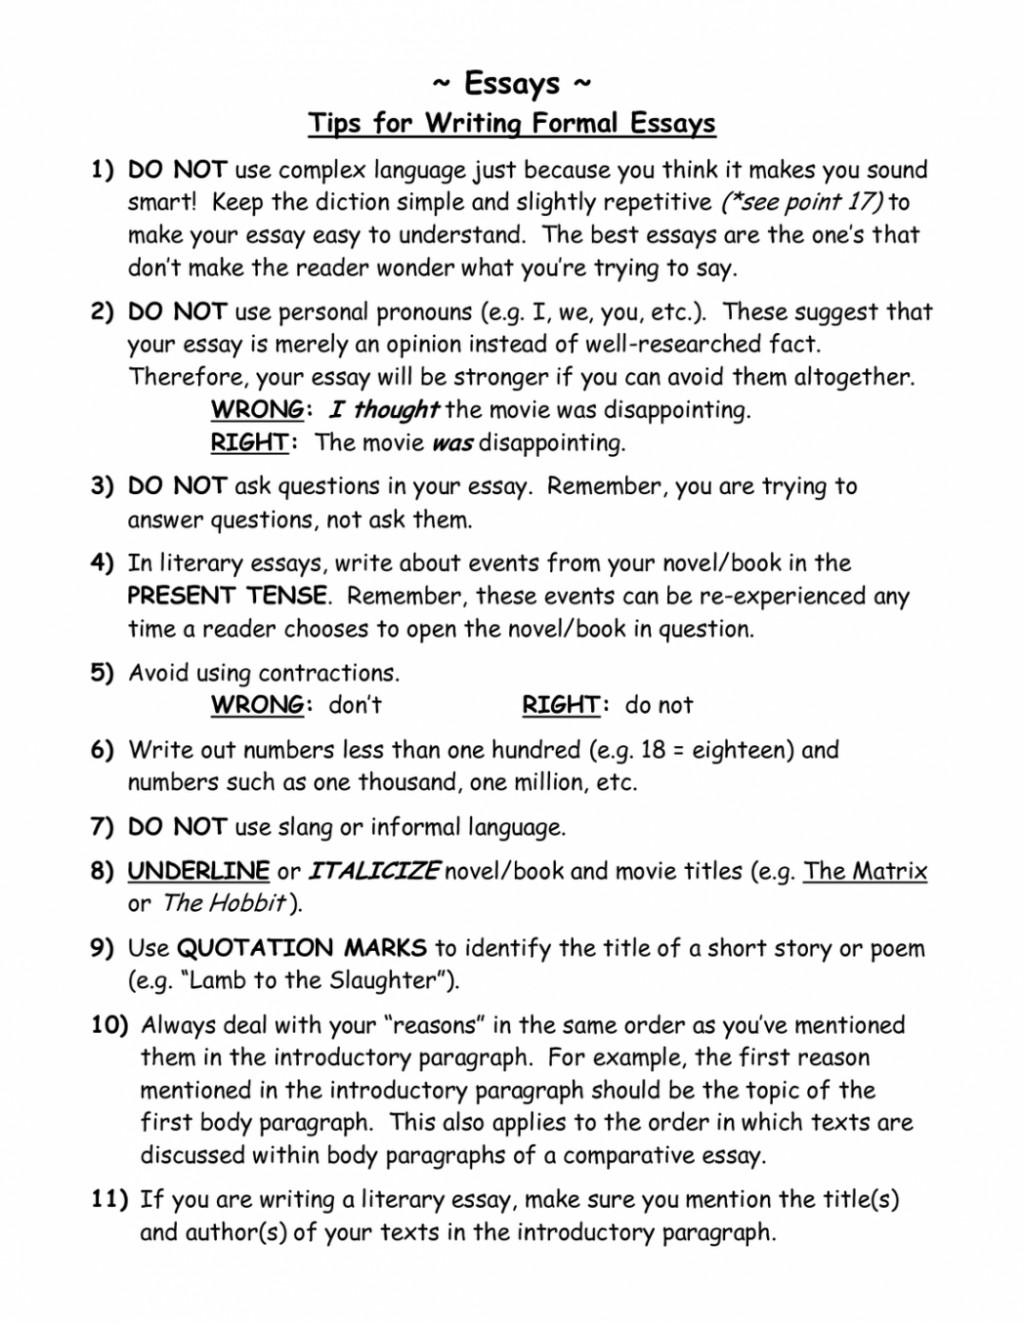 017 Discover What Not To Do When Creating School Essay Easy Way Write An On Book Books 1048x1356 Excellent Argumentative How Analytical Example In Ielts Task 2 Large